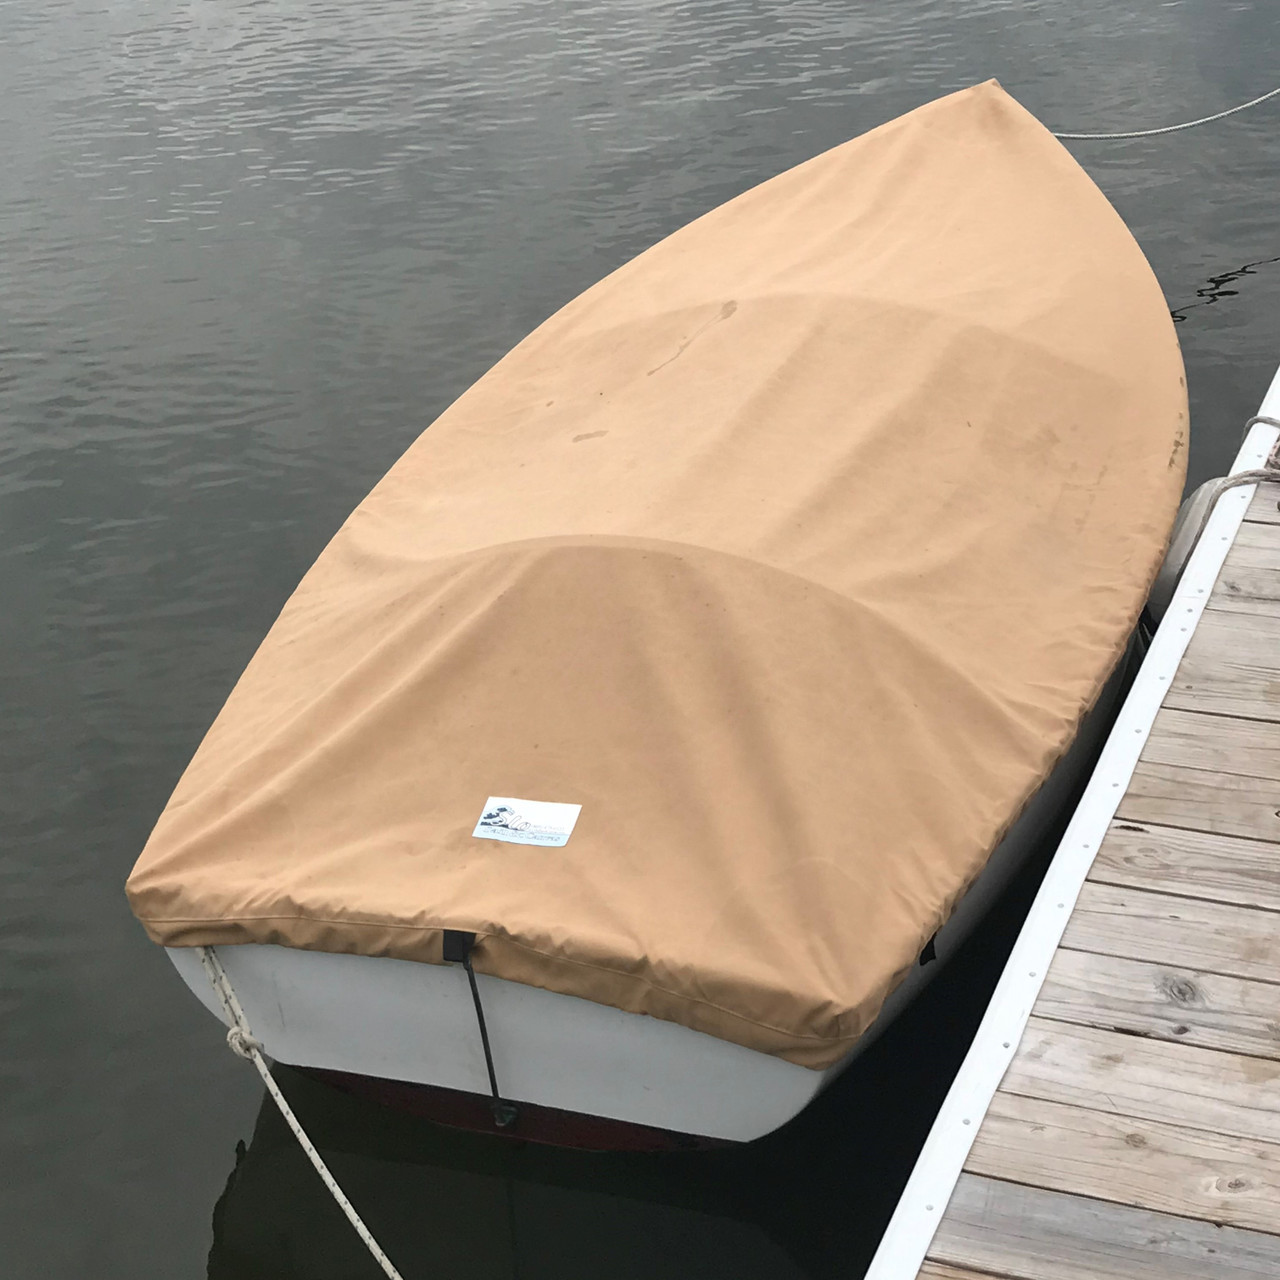 Protect your Dyer Dink from the Sun and nesting Ducks with a Top Cover available in many different fabric and colors. Pictured: Sunbrella Toast